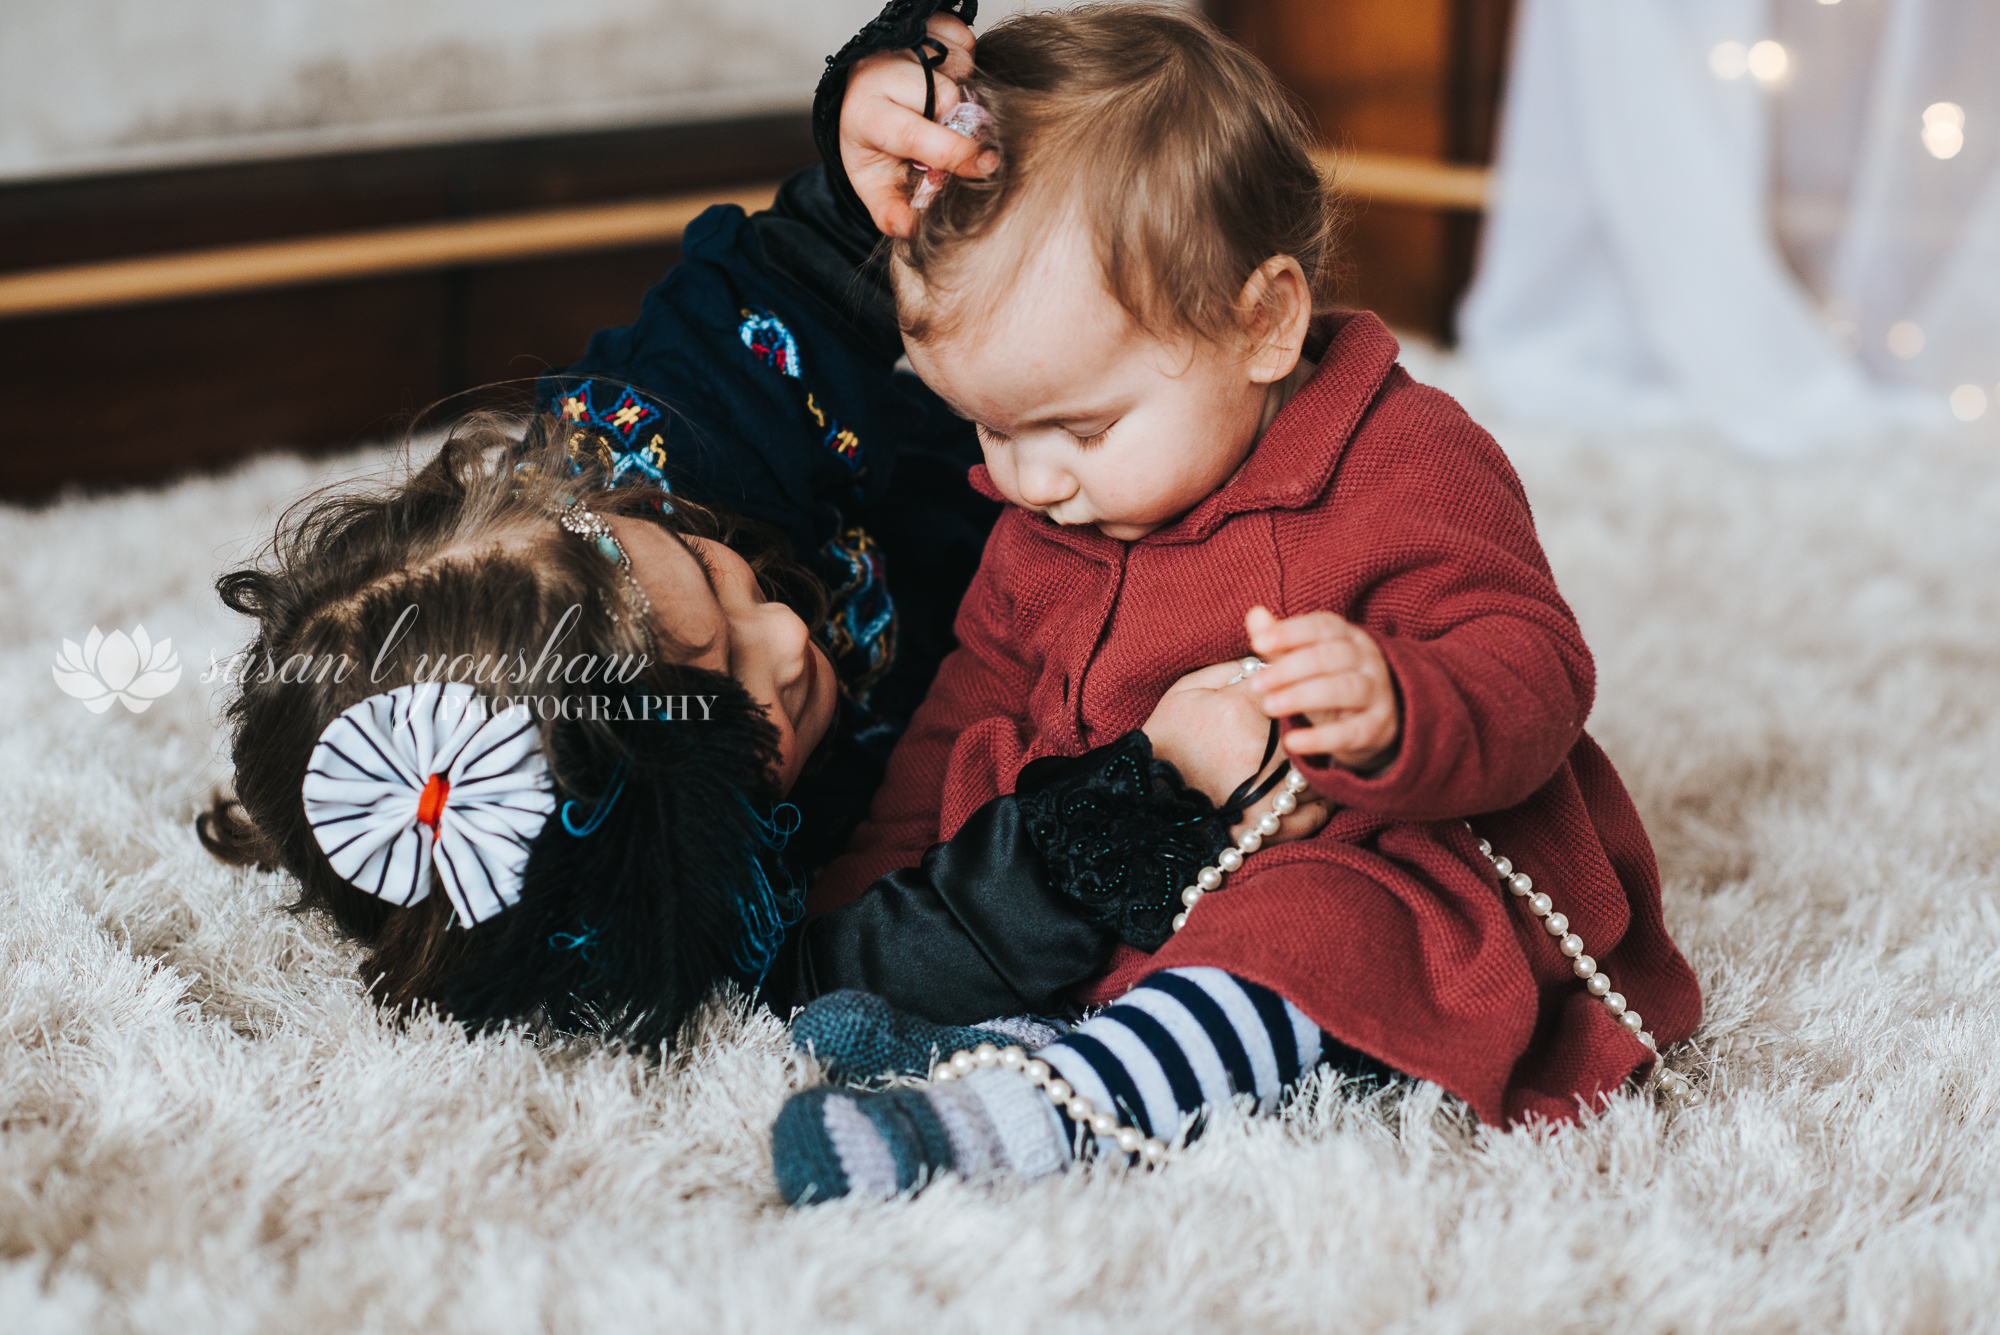 Children portraits lucia and gulia 01-06-2019 slyp photography llc-9.jpg